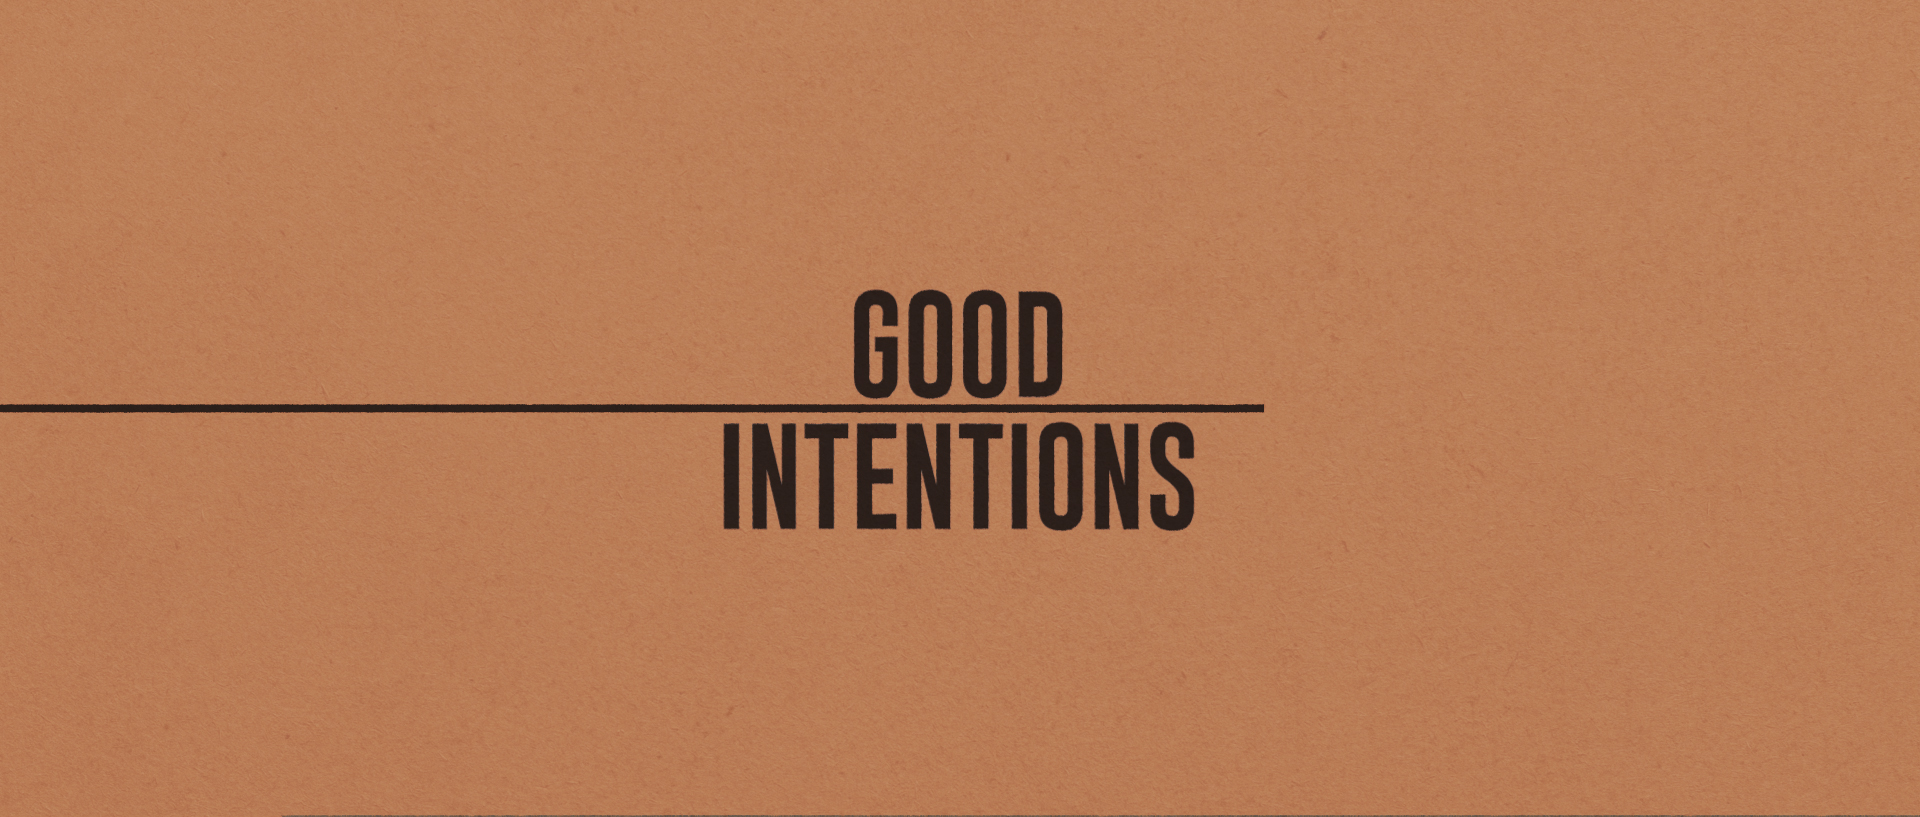 MOTION - Good Intentions - Main Timeline 3 (0-00-23-11).jpg